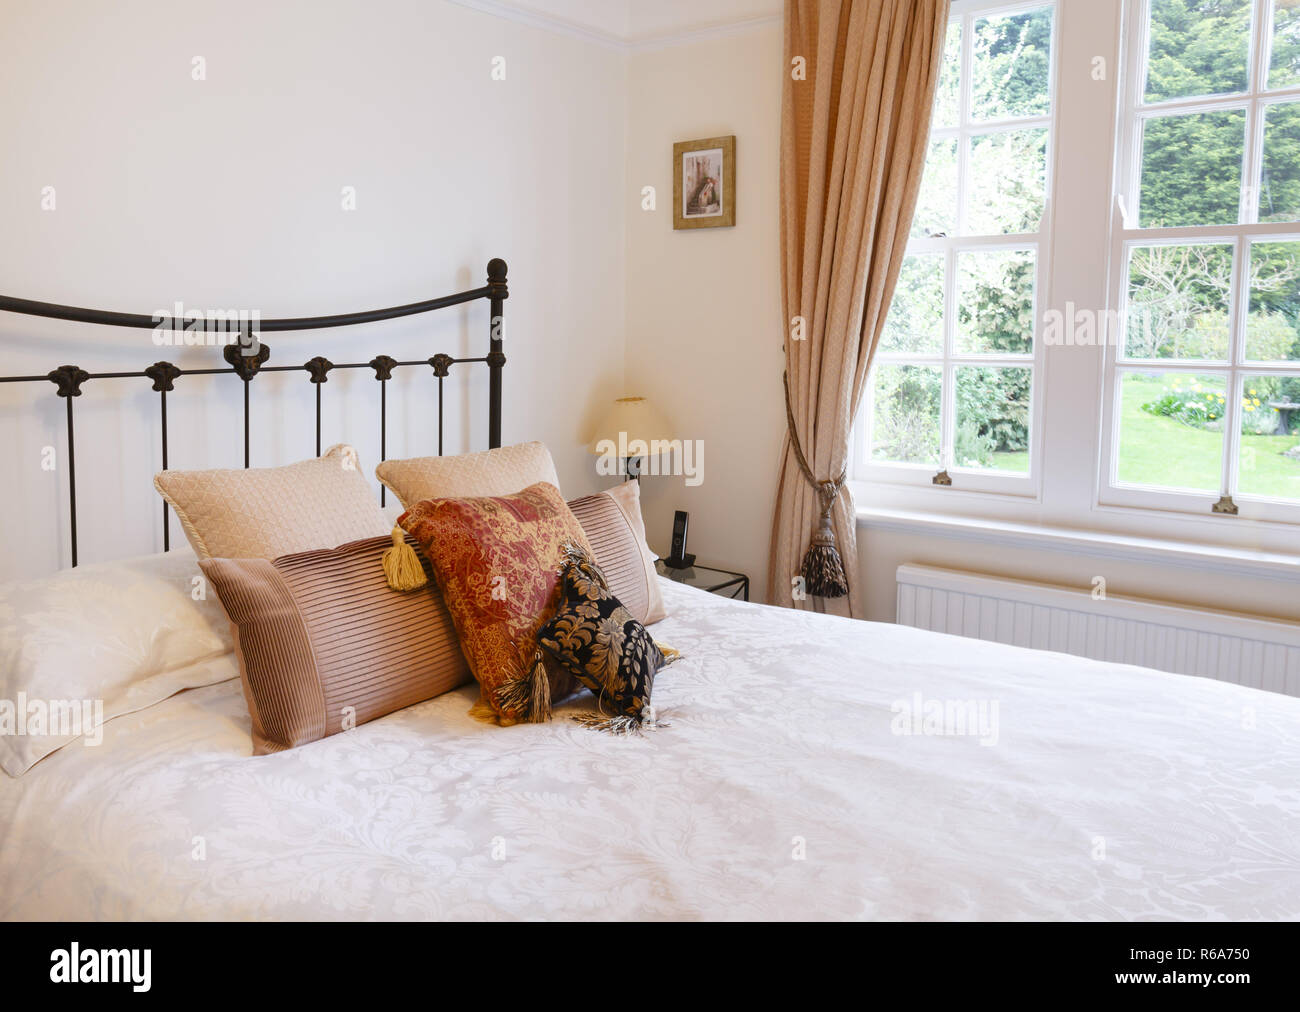 Bedroom interior in a traditional style English house with luxury soft furnishing - Stock Image